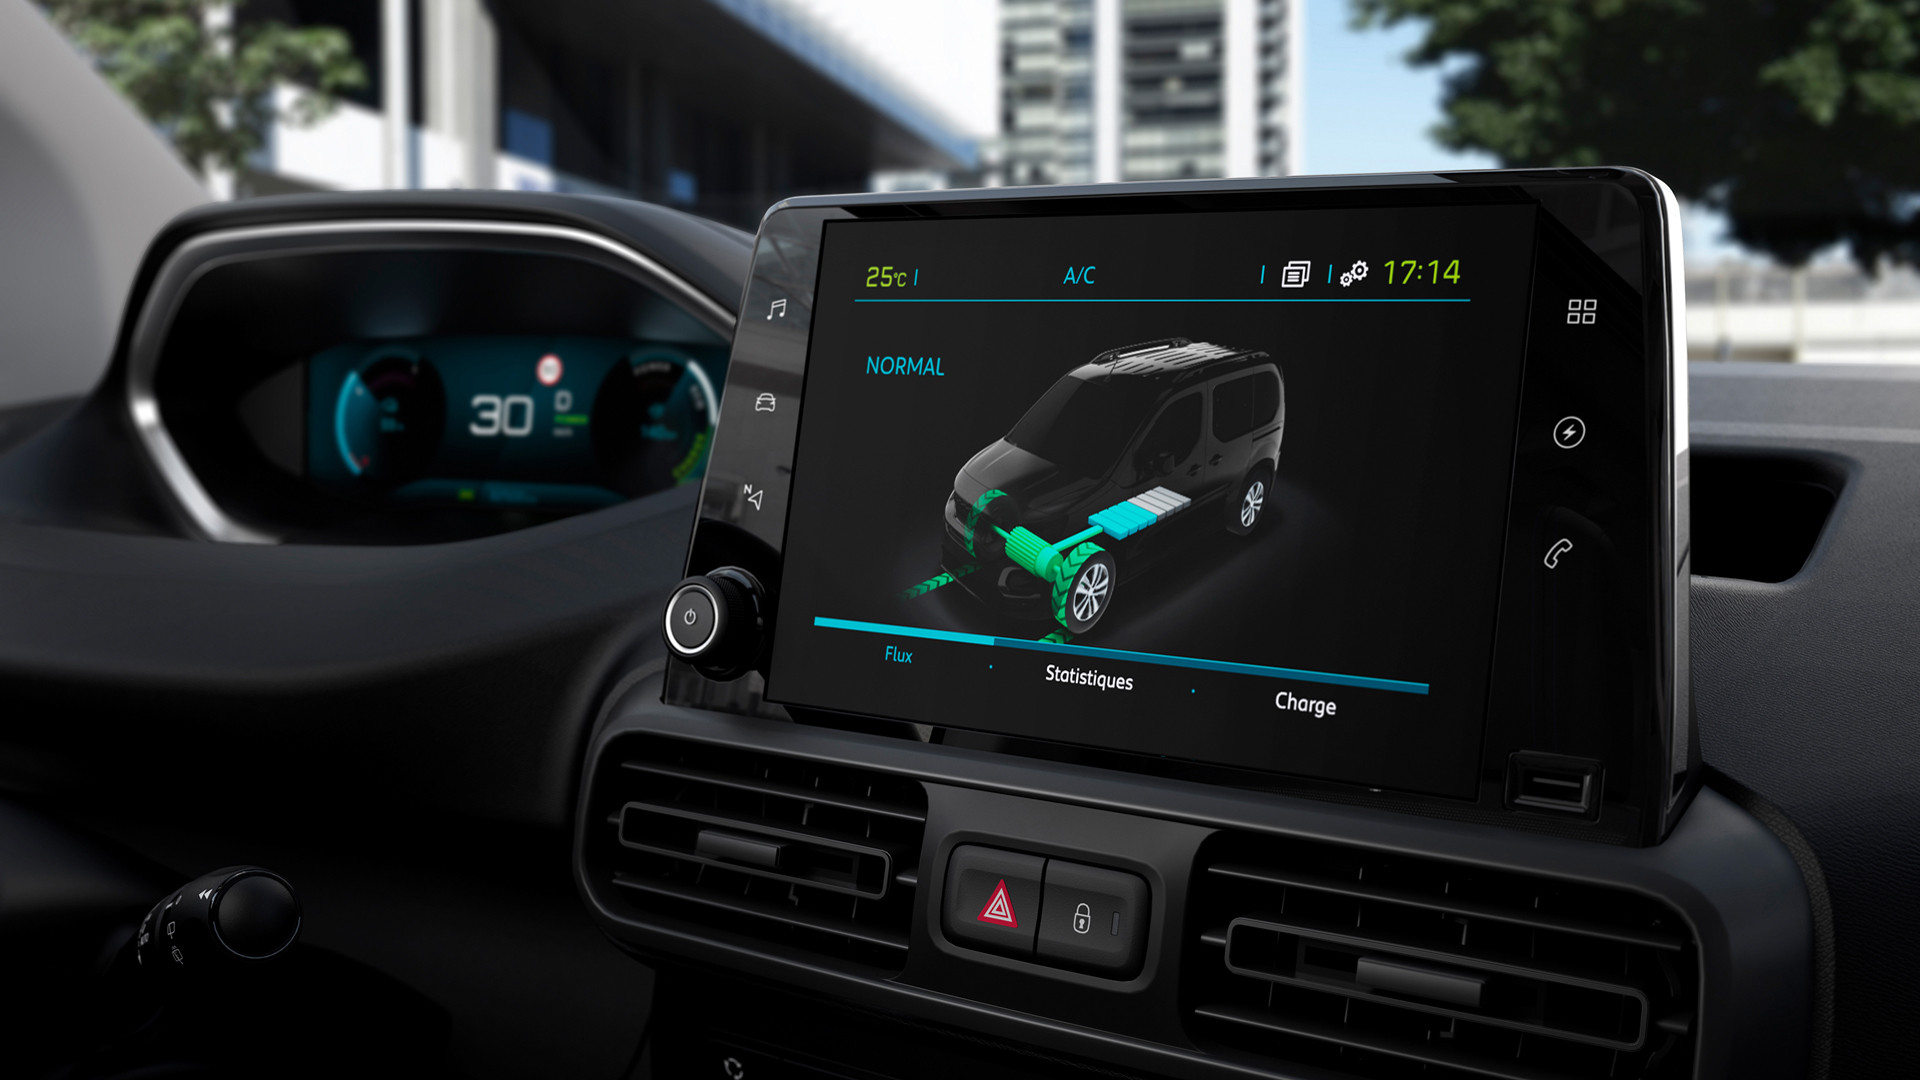 PEUGEOT boosts electric range with new Peugeot e-Partner